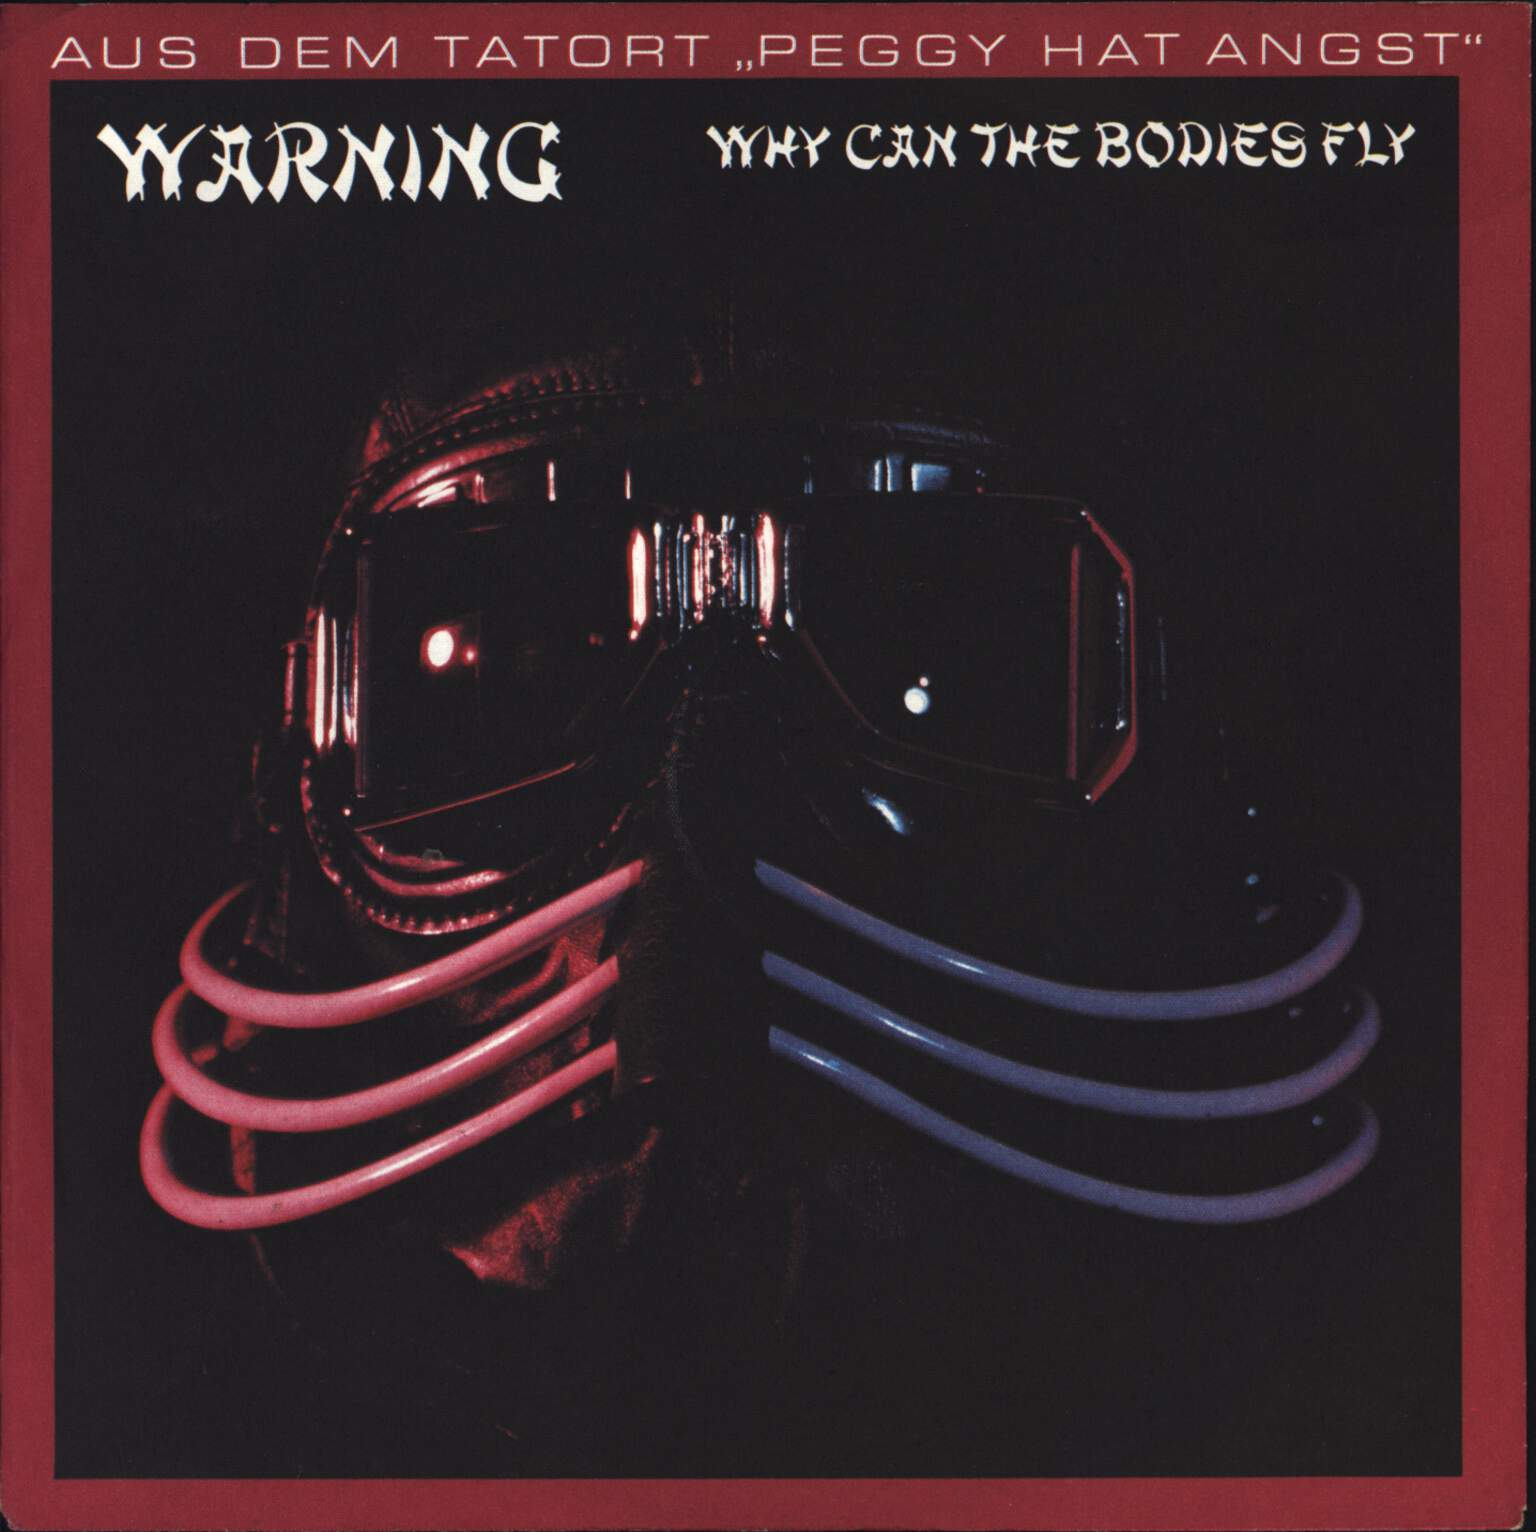 "Warning: Why Can The Bodies Fly, 7"" Single (Vinyl)"